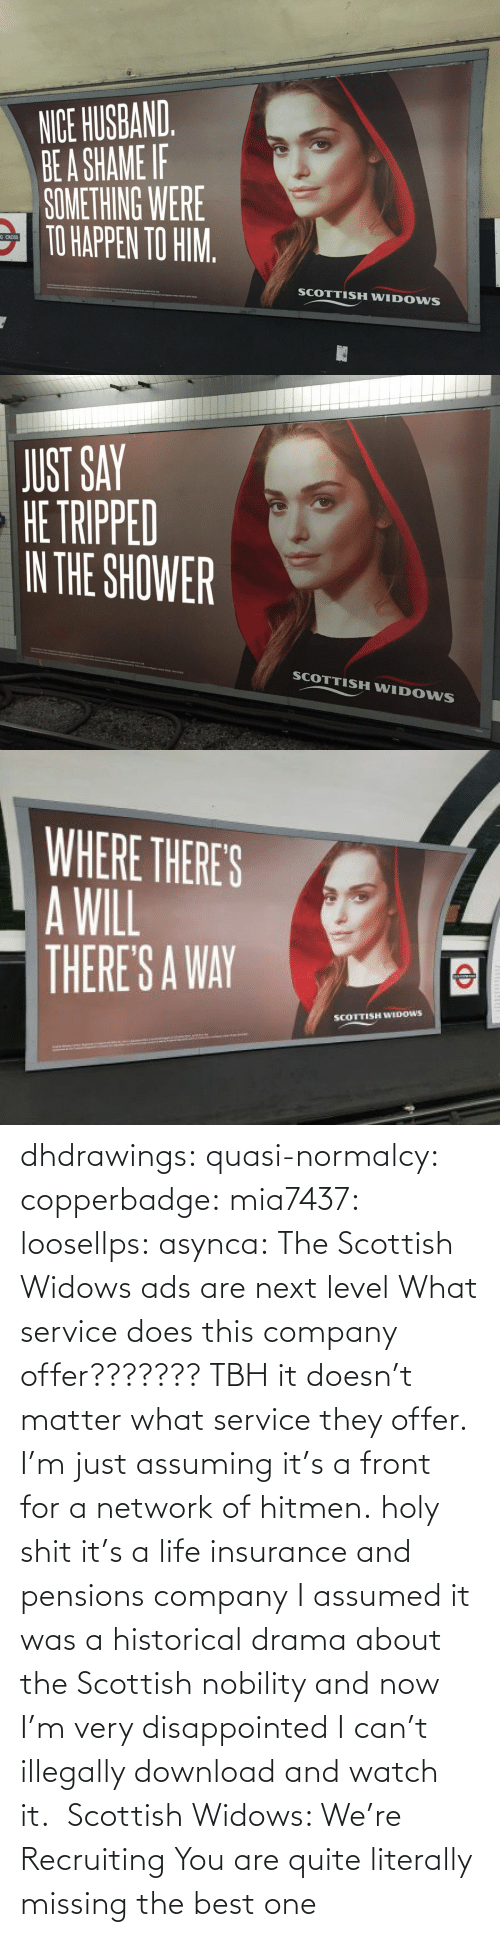 Was: dhdrawings:  quasi-normalcy:  copperbadge:  mia7437:  loosellps:  asynca: The Scottish Widows ads are next level What service does this company offer??????? TBH it doesn't matter what service they offer. I'm just assuming it's a front for a network of hitmen.  holy shit it's a life insurance and pensions company  I assumed it was a historical drama about the Scottish nobility and now I'm very disappointed I can't illegally download and watch it.     Scottish Widows: We're Recruiting    You are quite literally missing the best one